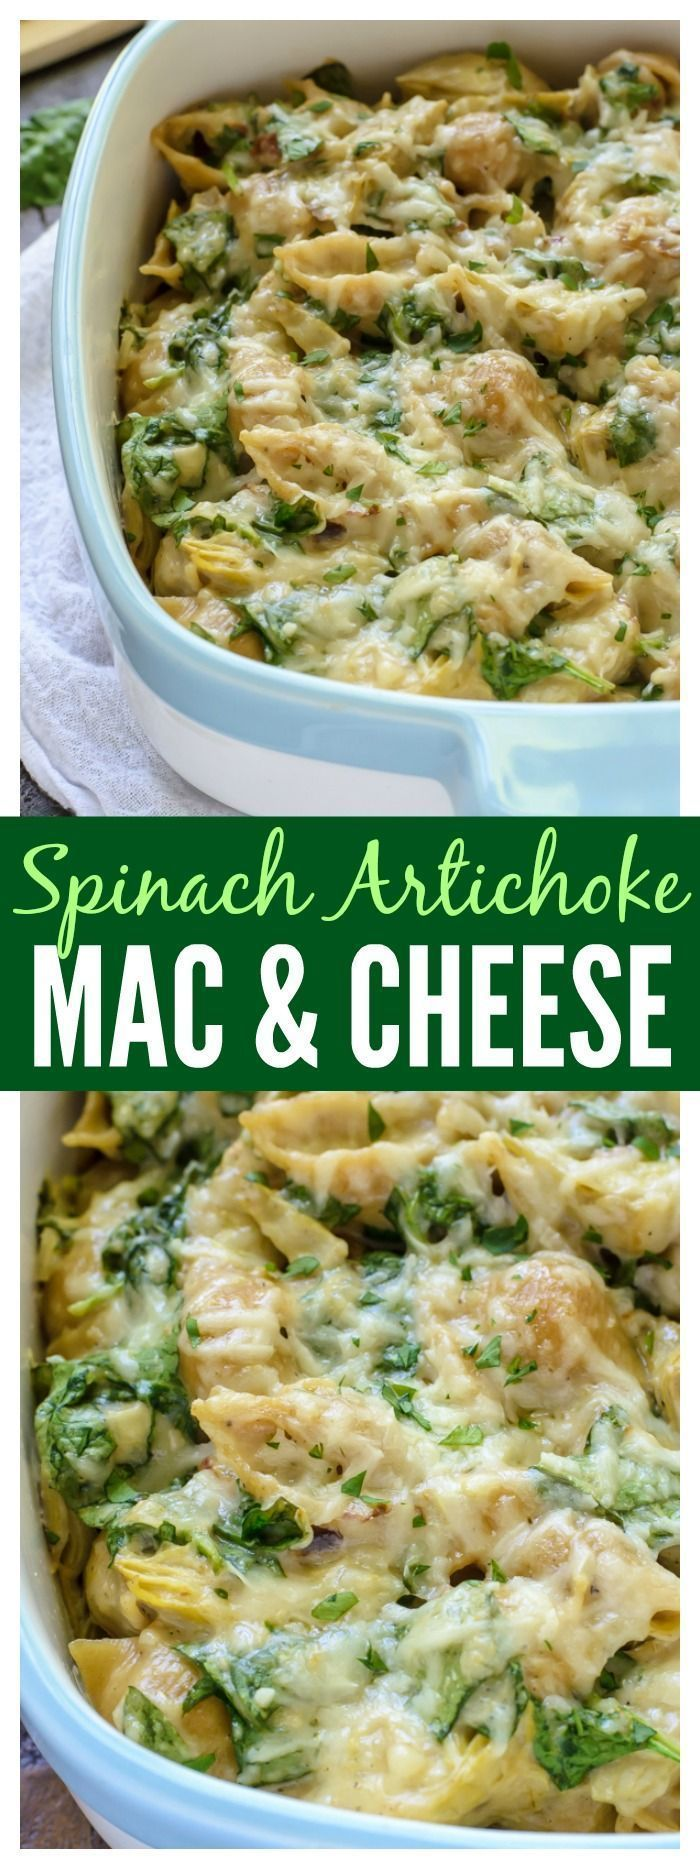 Everyone's favorite Spinach Artichoke Dip in Mac and Cheese form! A rich, all-in-one dinner recipe that's surprisingly good for you.